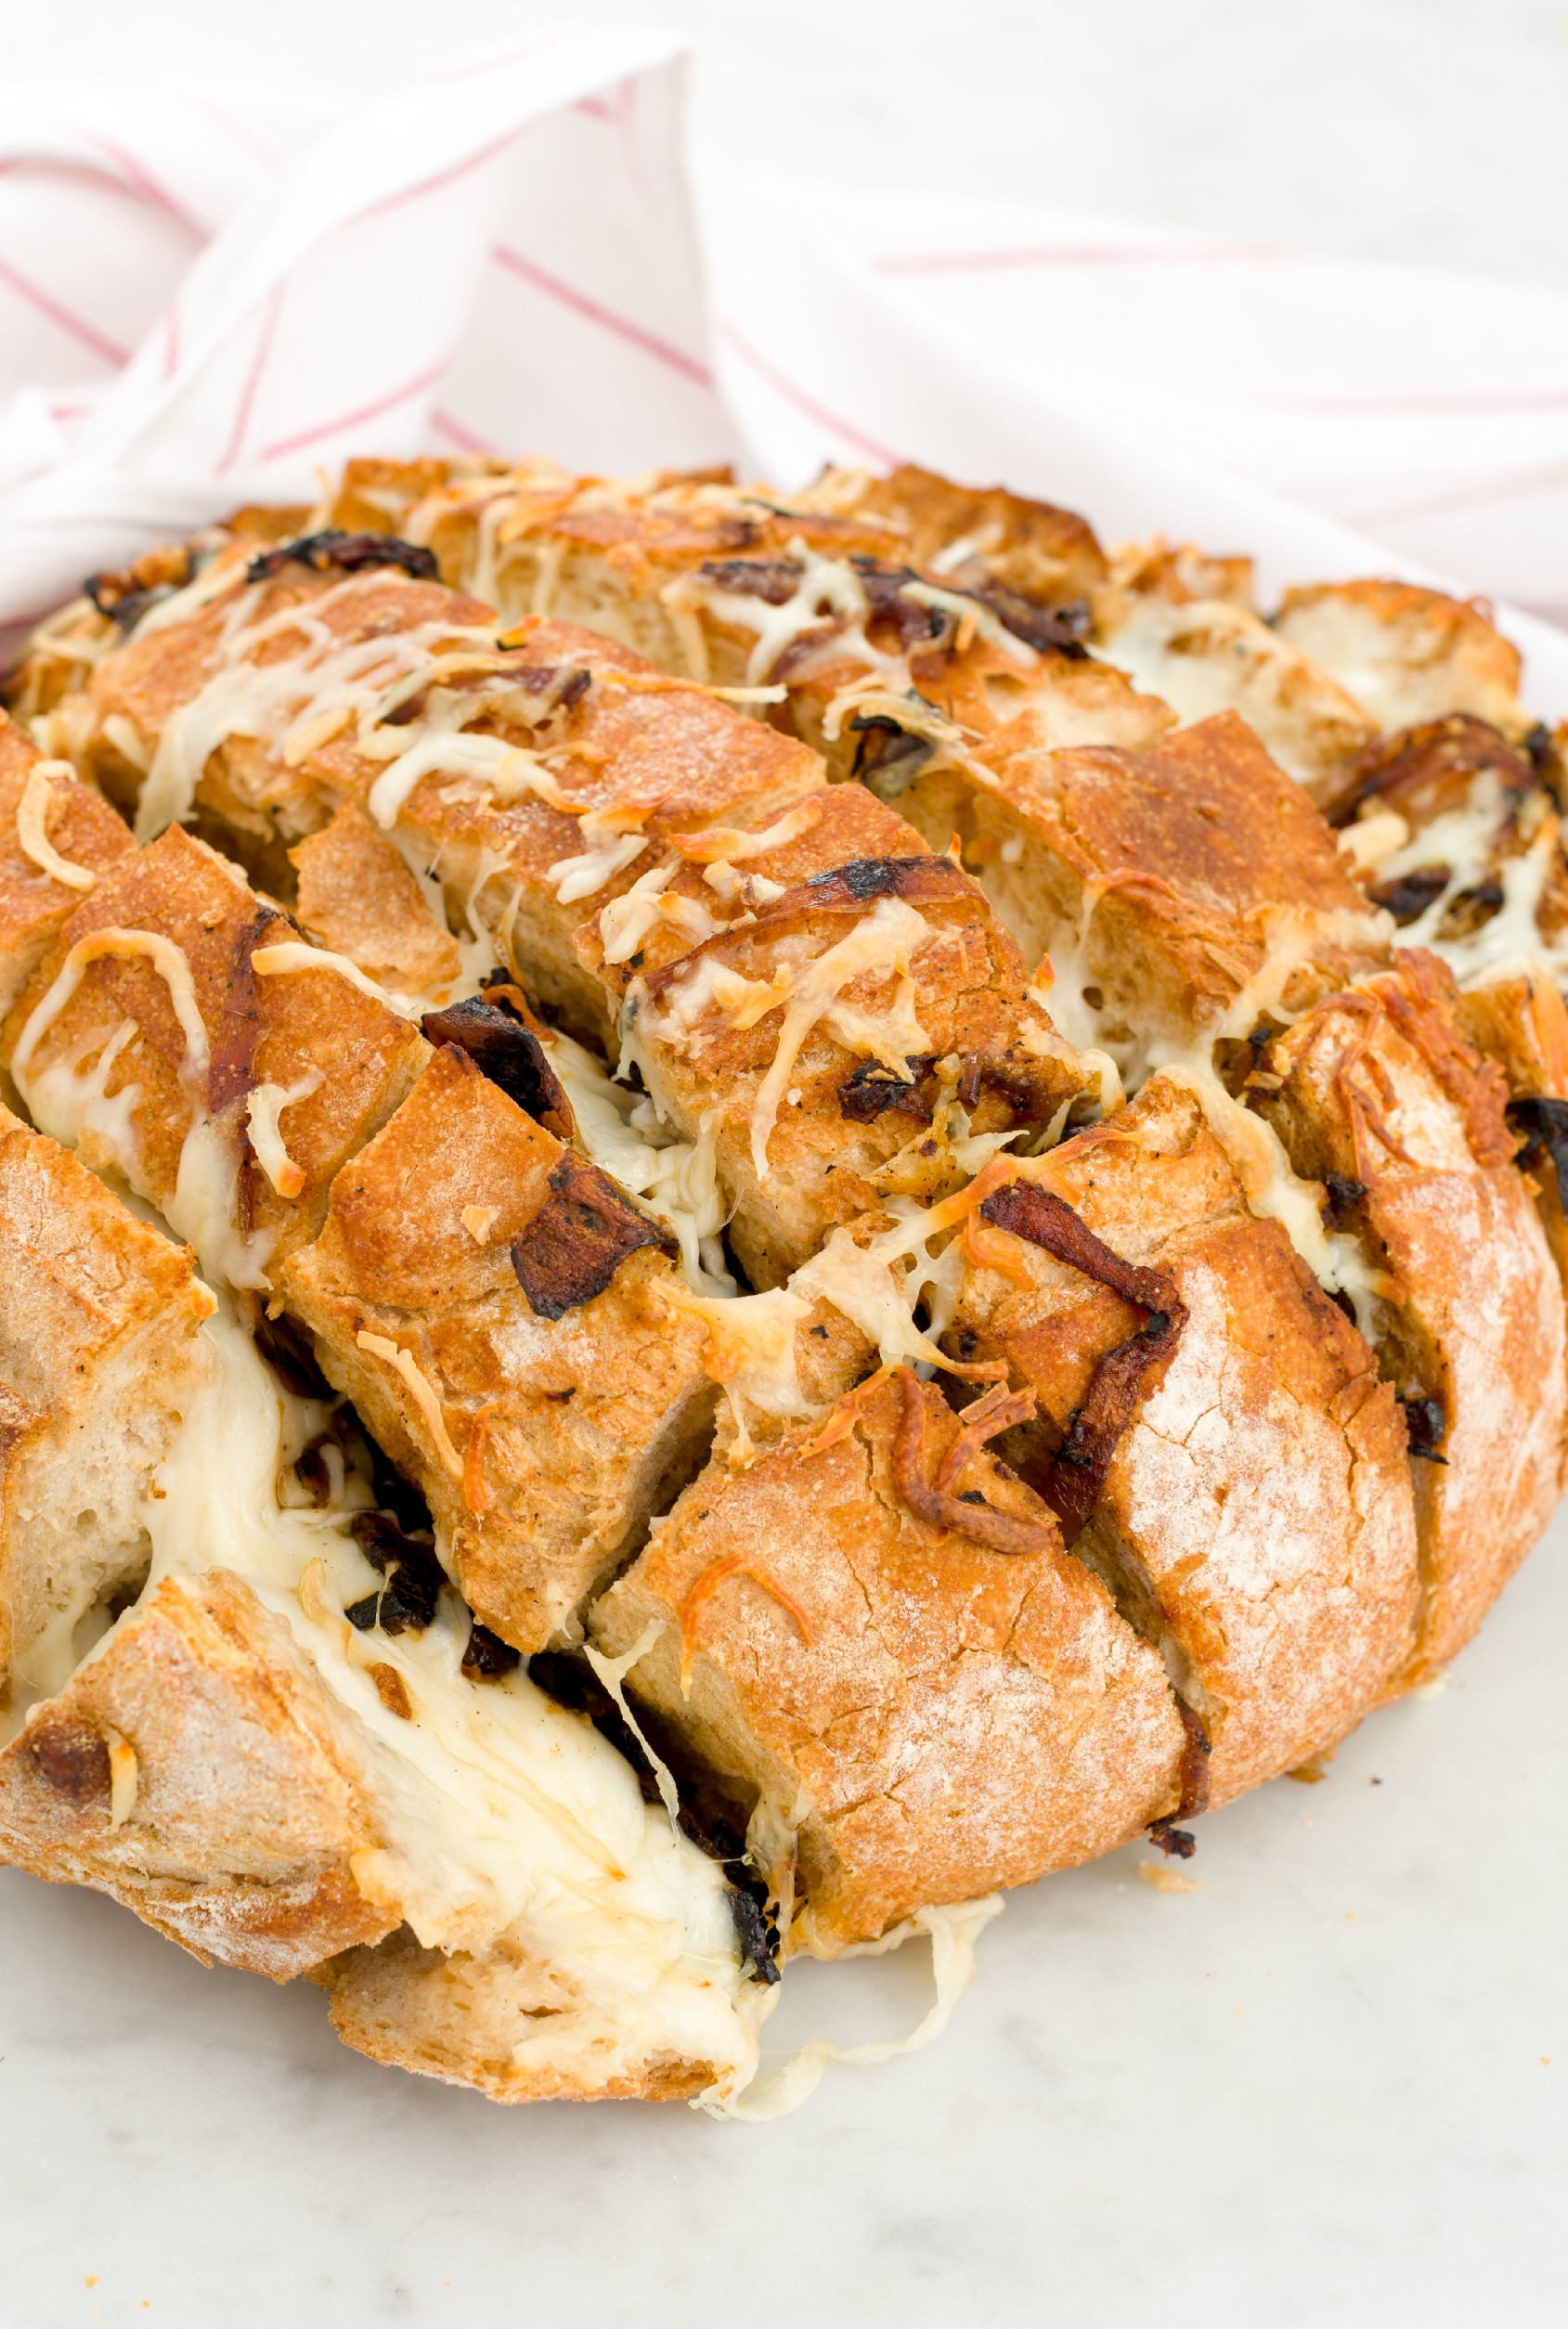 Pull-Apart Bread Ideas - How to Make Pull-Apart Bread